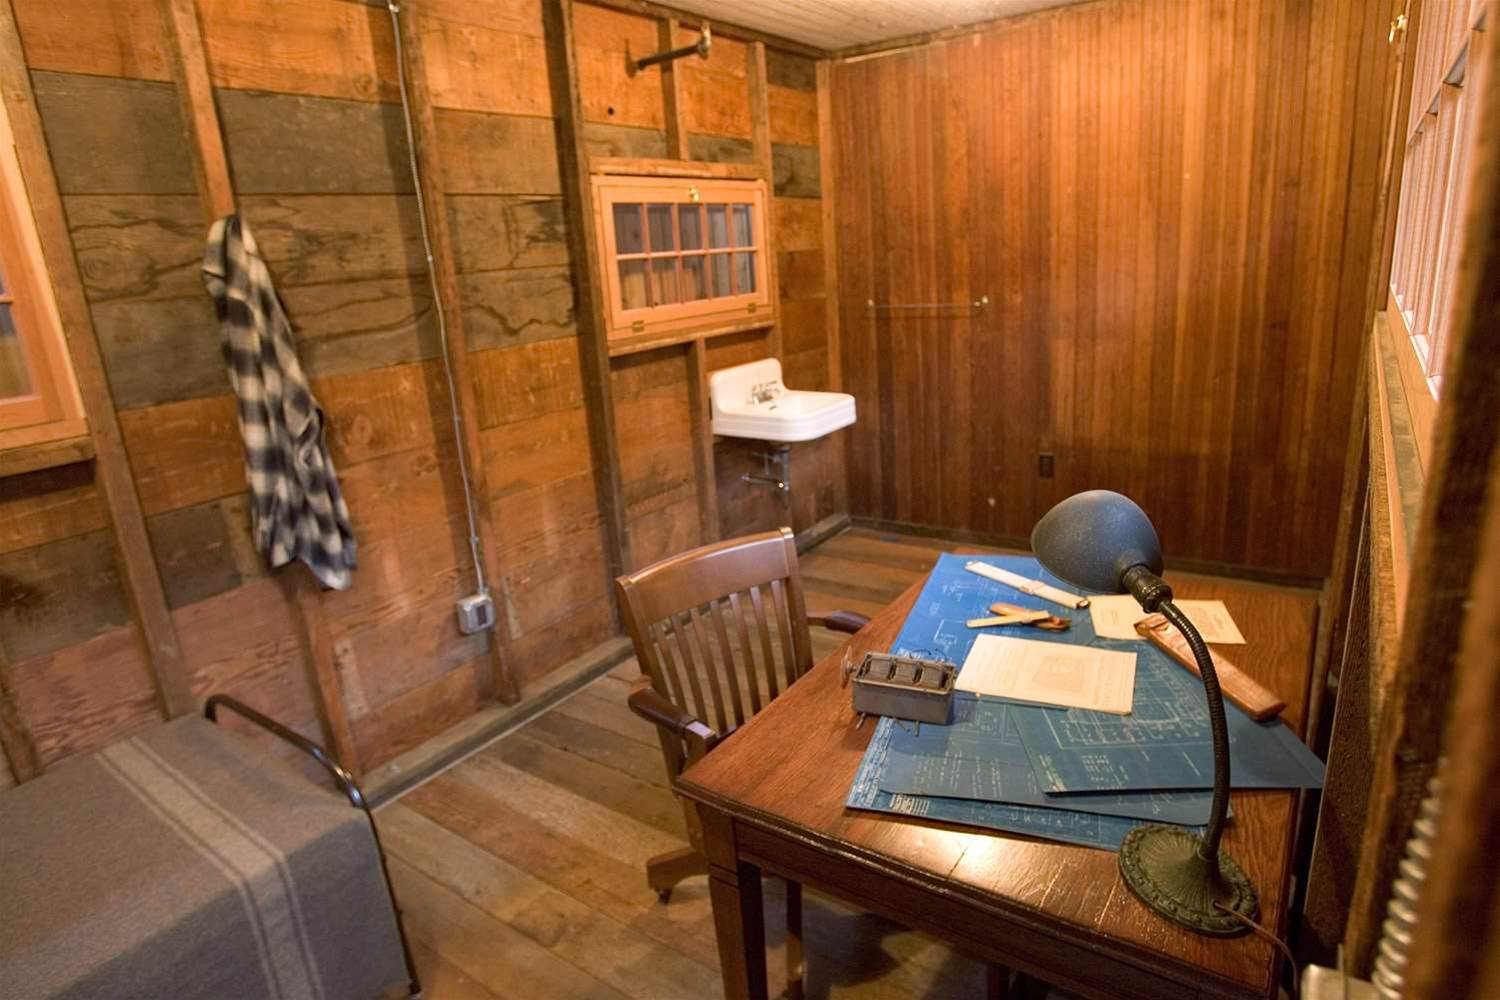 Interior view of the bedsit where Dave Packard slept.